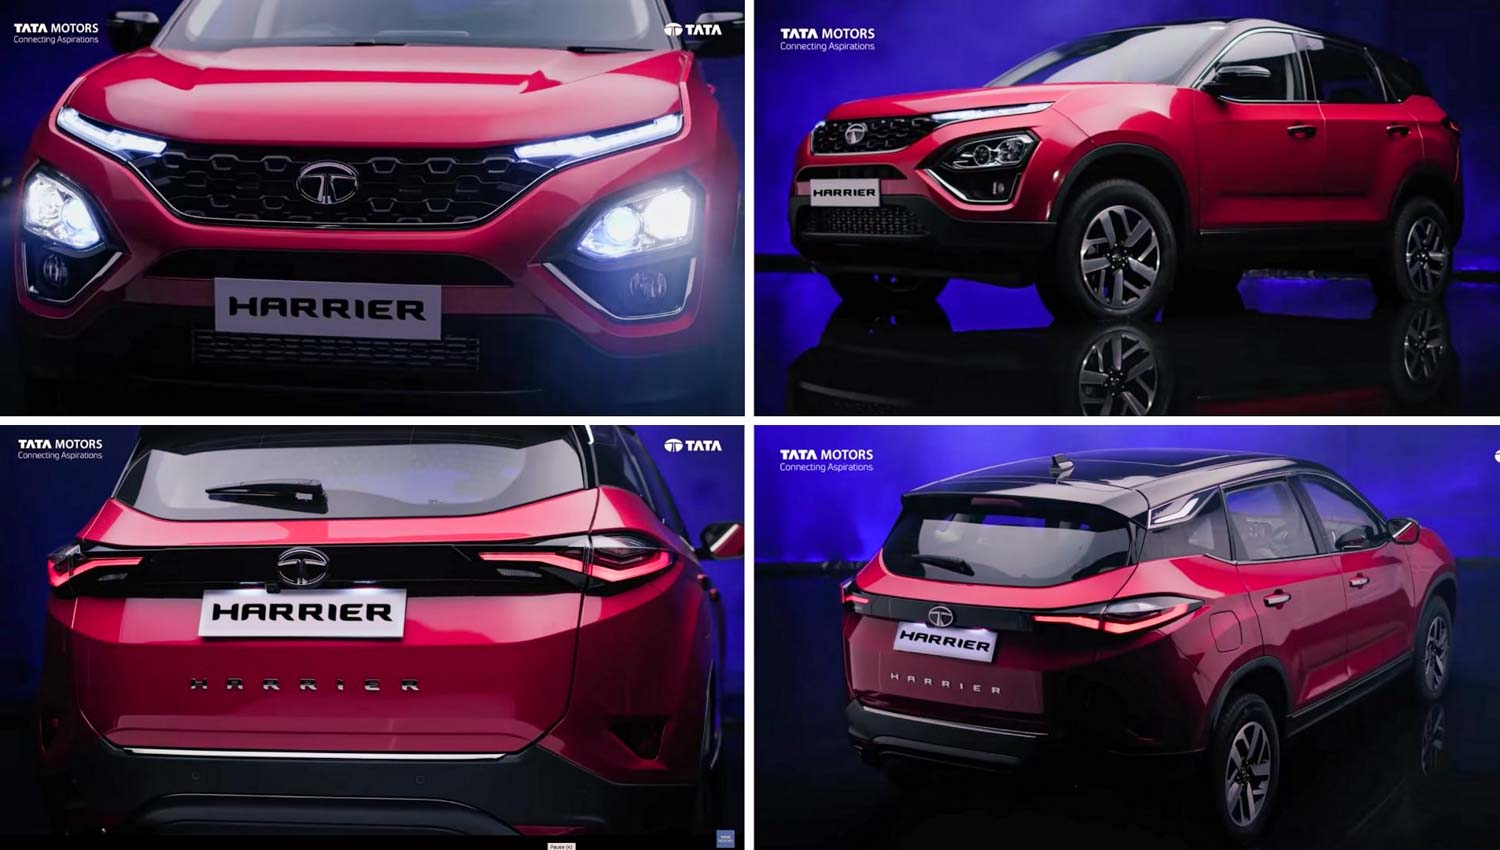 2020 Tata Harrier Gets New TVC To Highlight Its New Features